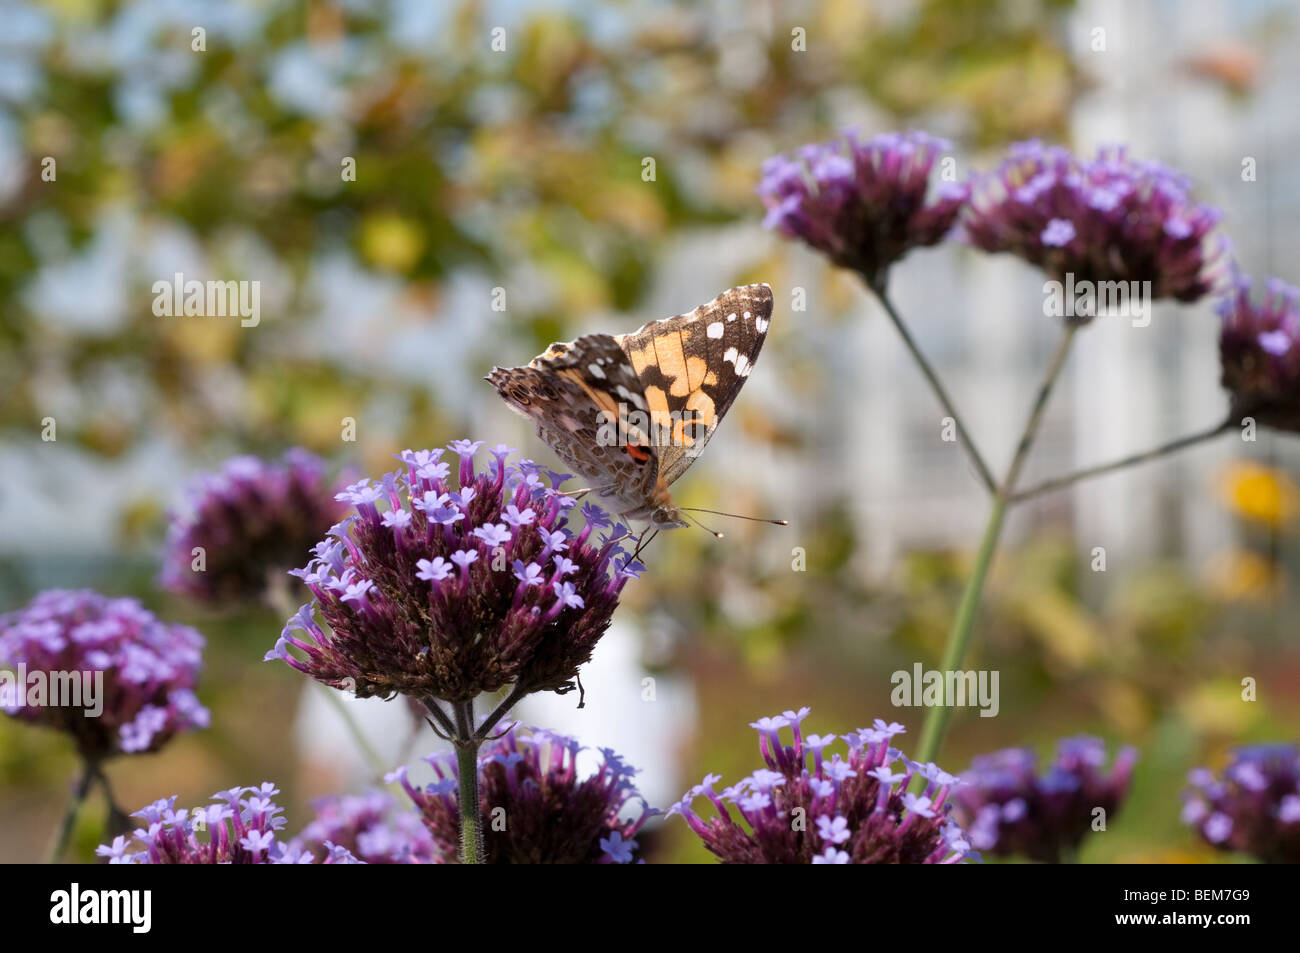 Painted lady butterfly feeding on verbena flower - Stock Image